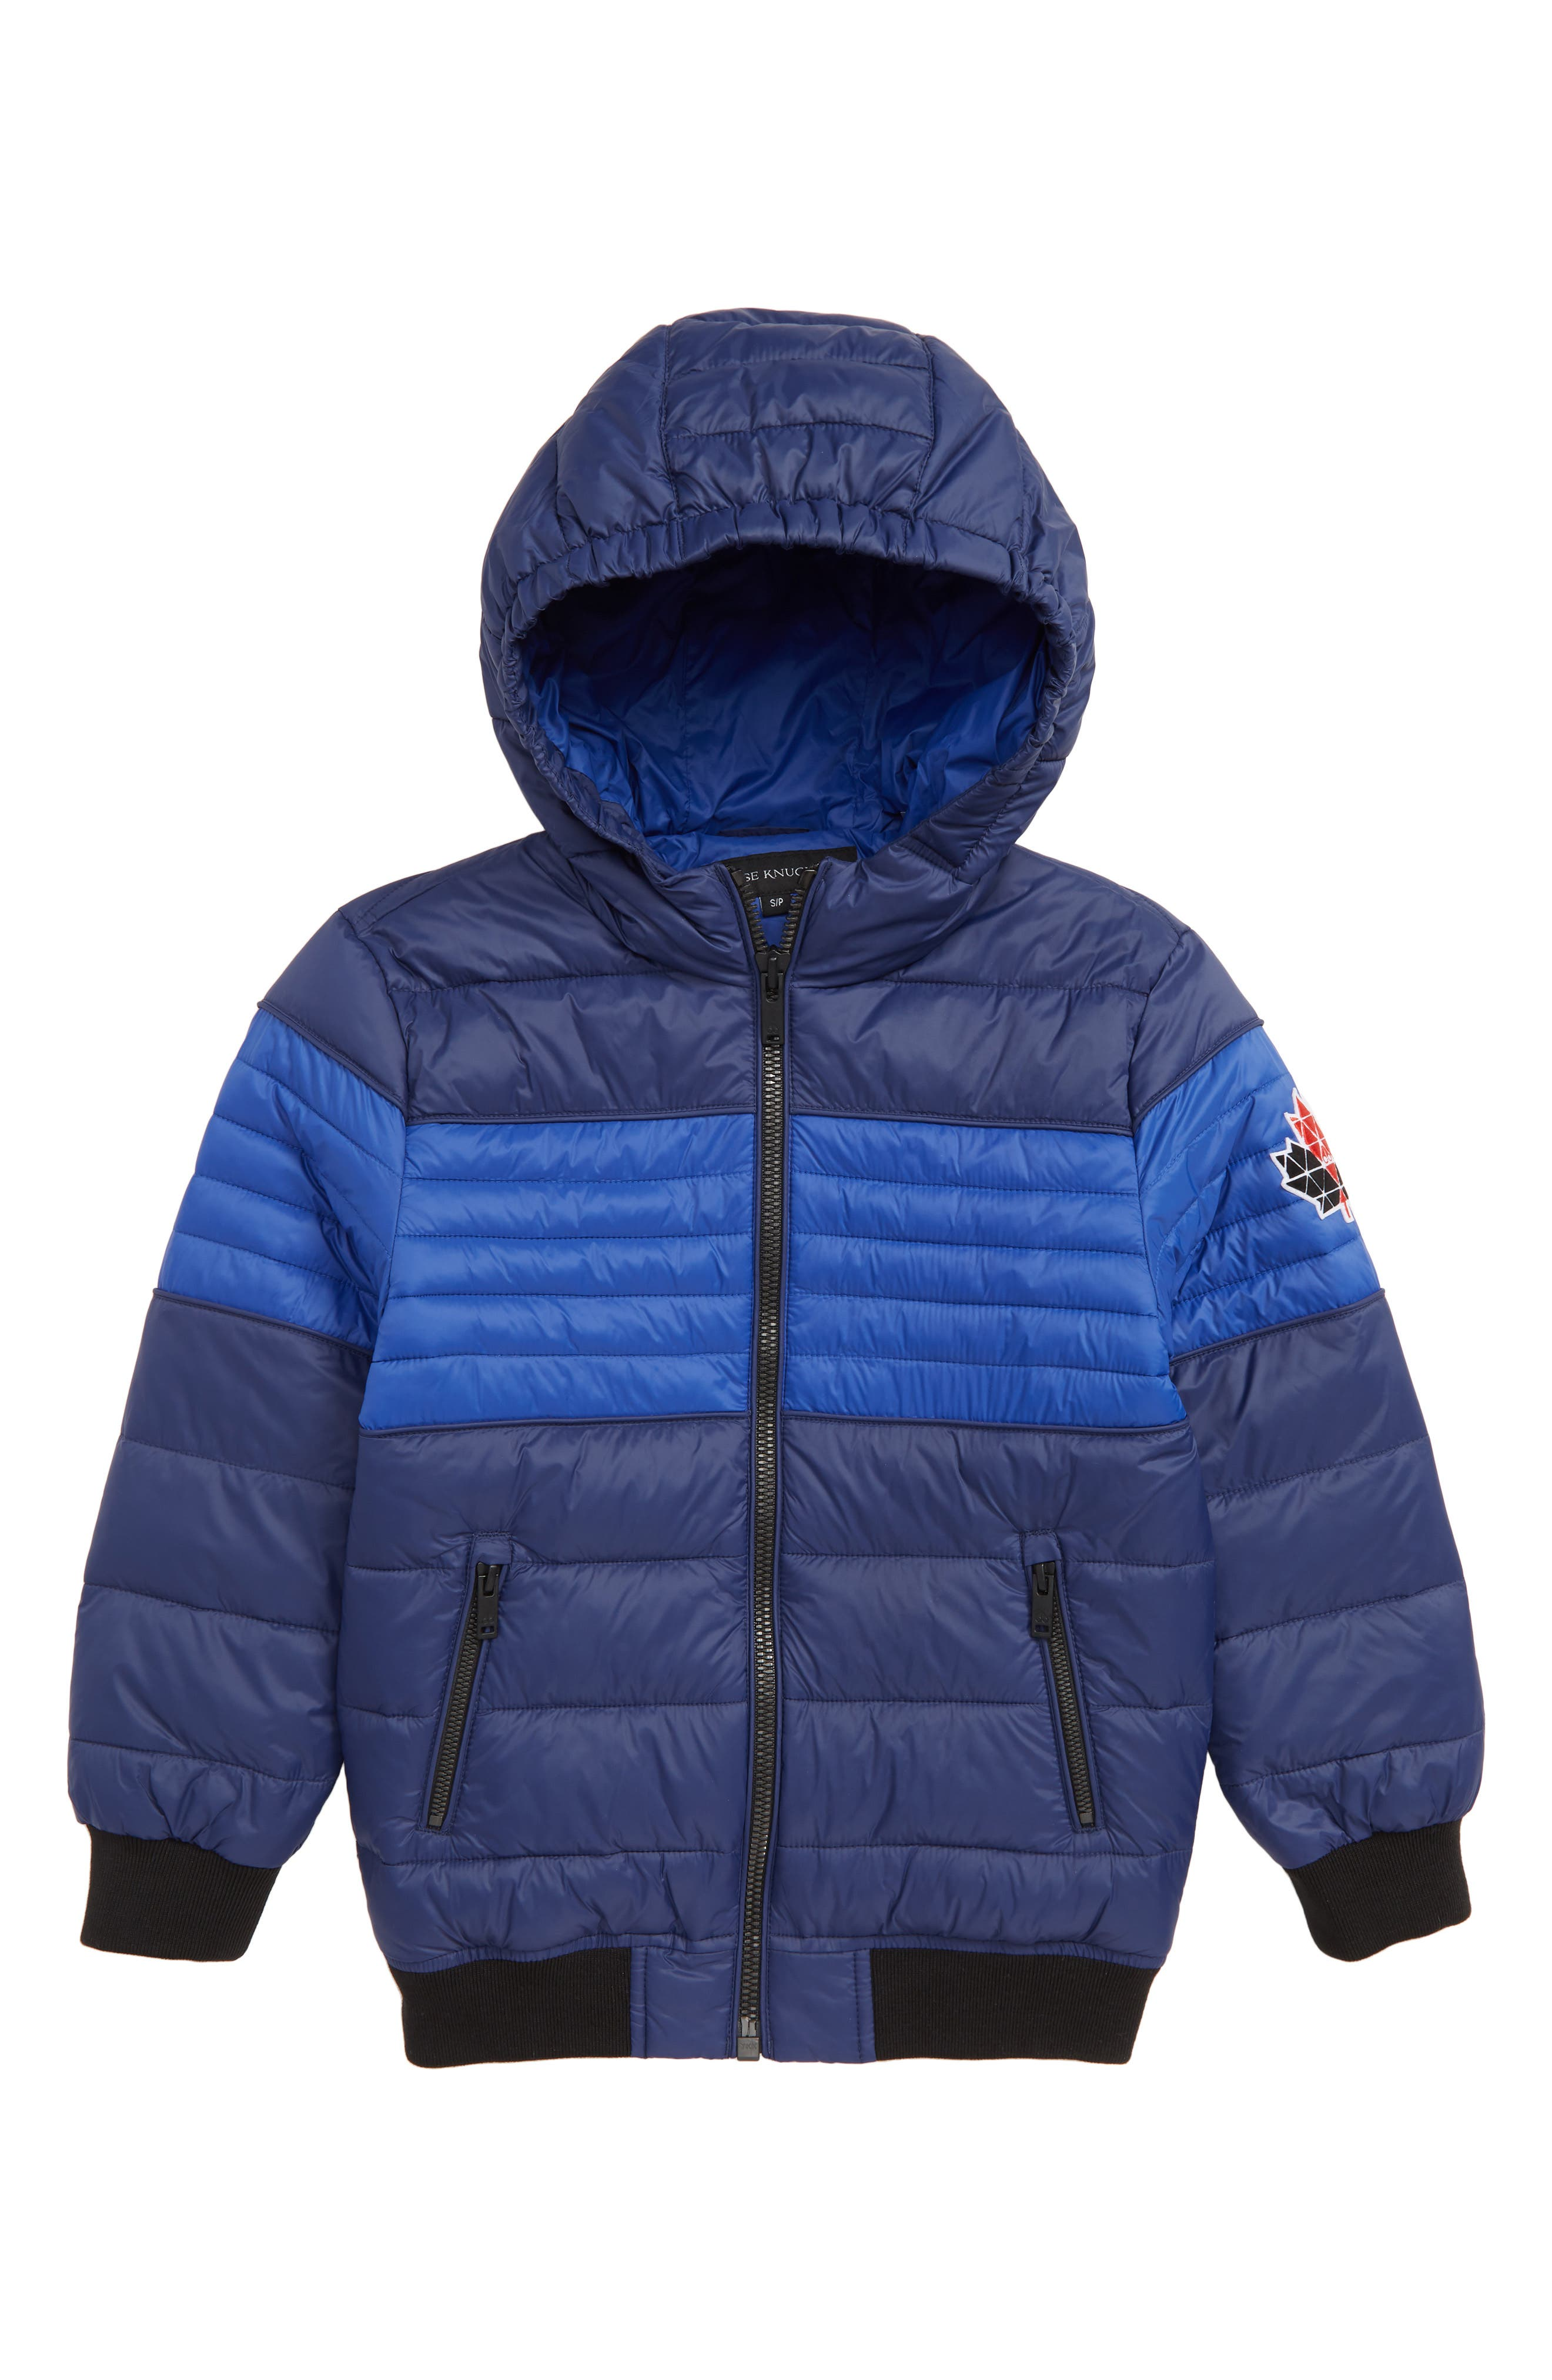 MOOSE KNUCKLES,                             Peel Quilted Hooded Jacket,                             Main thumbnail 1, color,                             NAVY